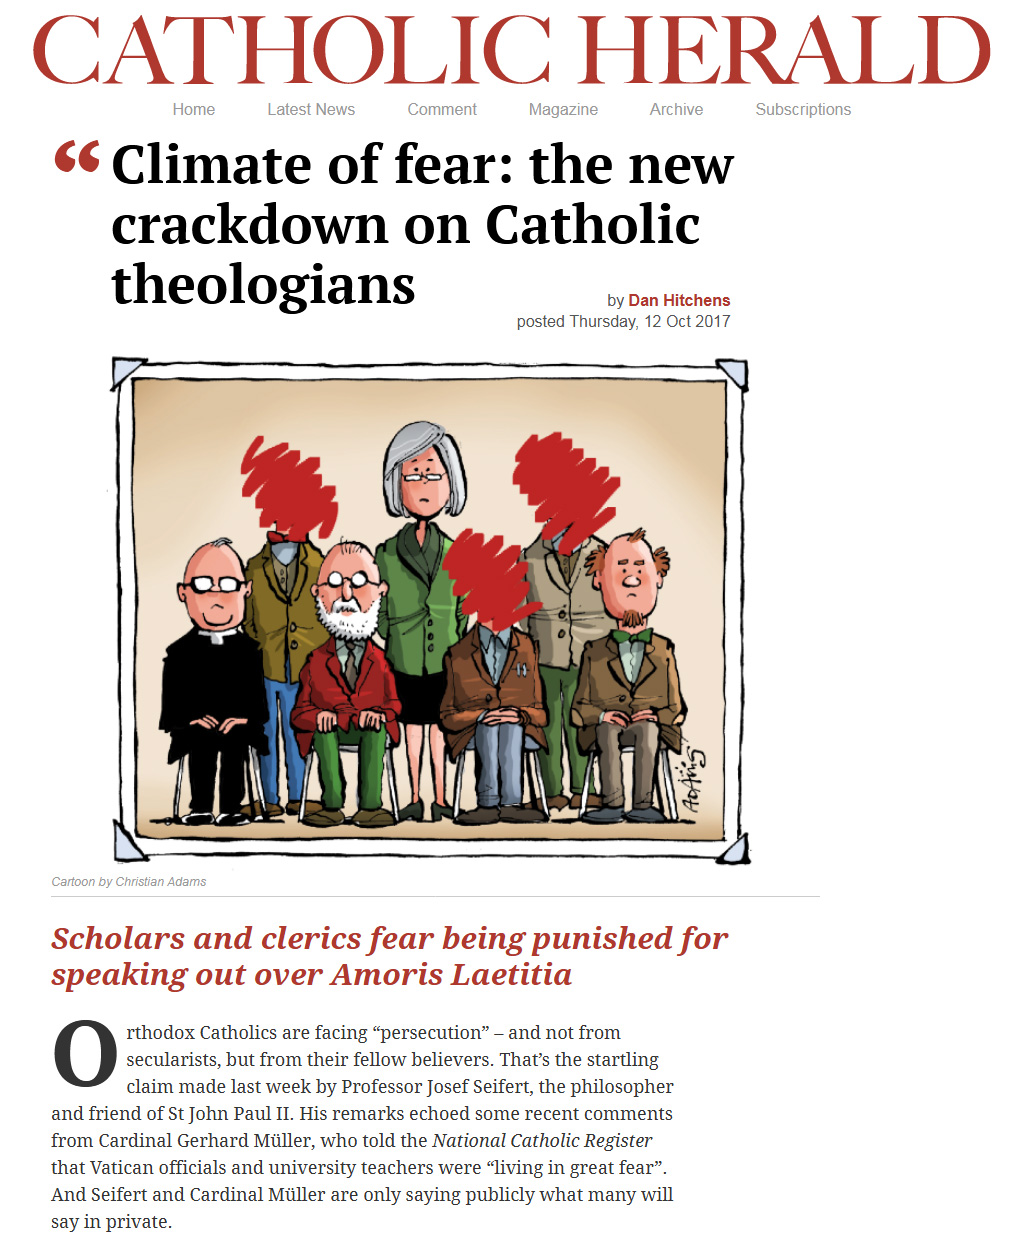 theologians persecuted under false prophet pope francis, maria divine mercy, prophecy